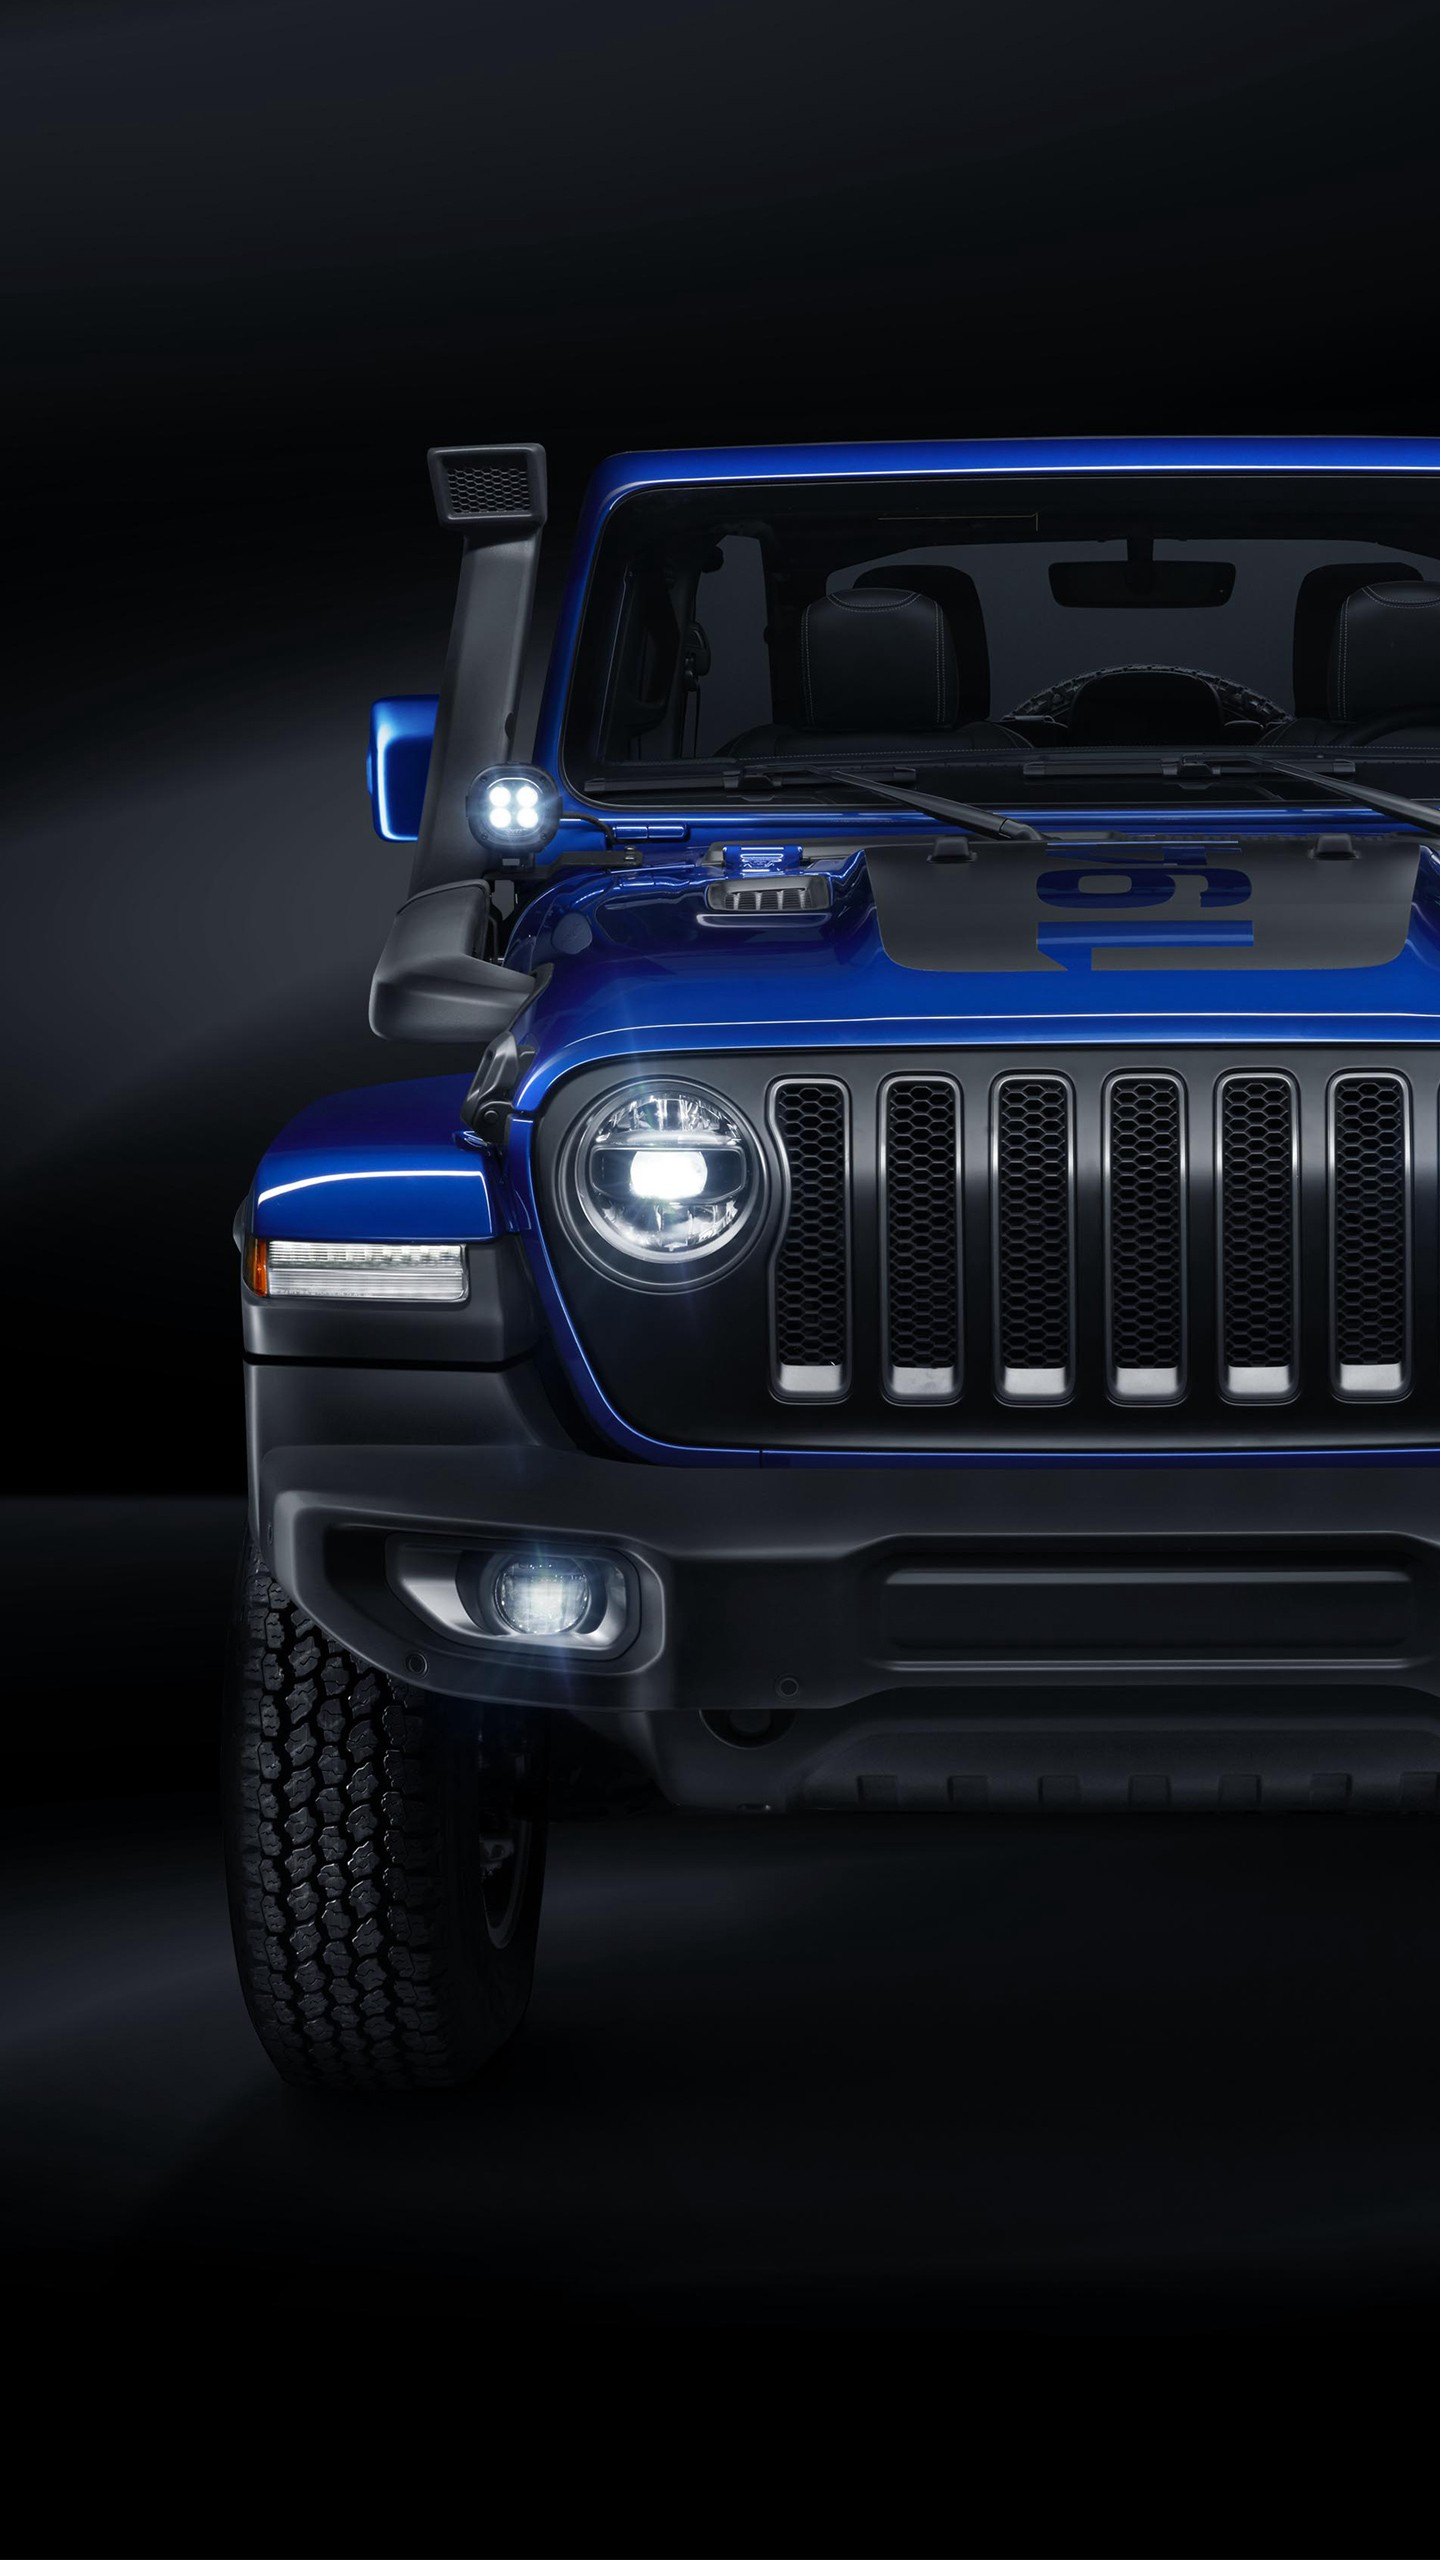 Jeep Wrangler Wallpaper Iphone Posted By Samantha Mercado